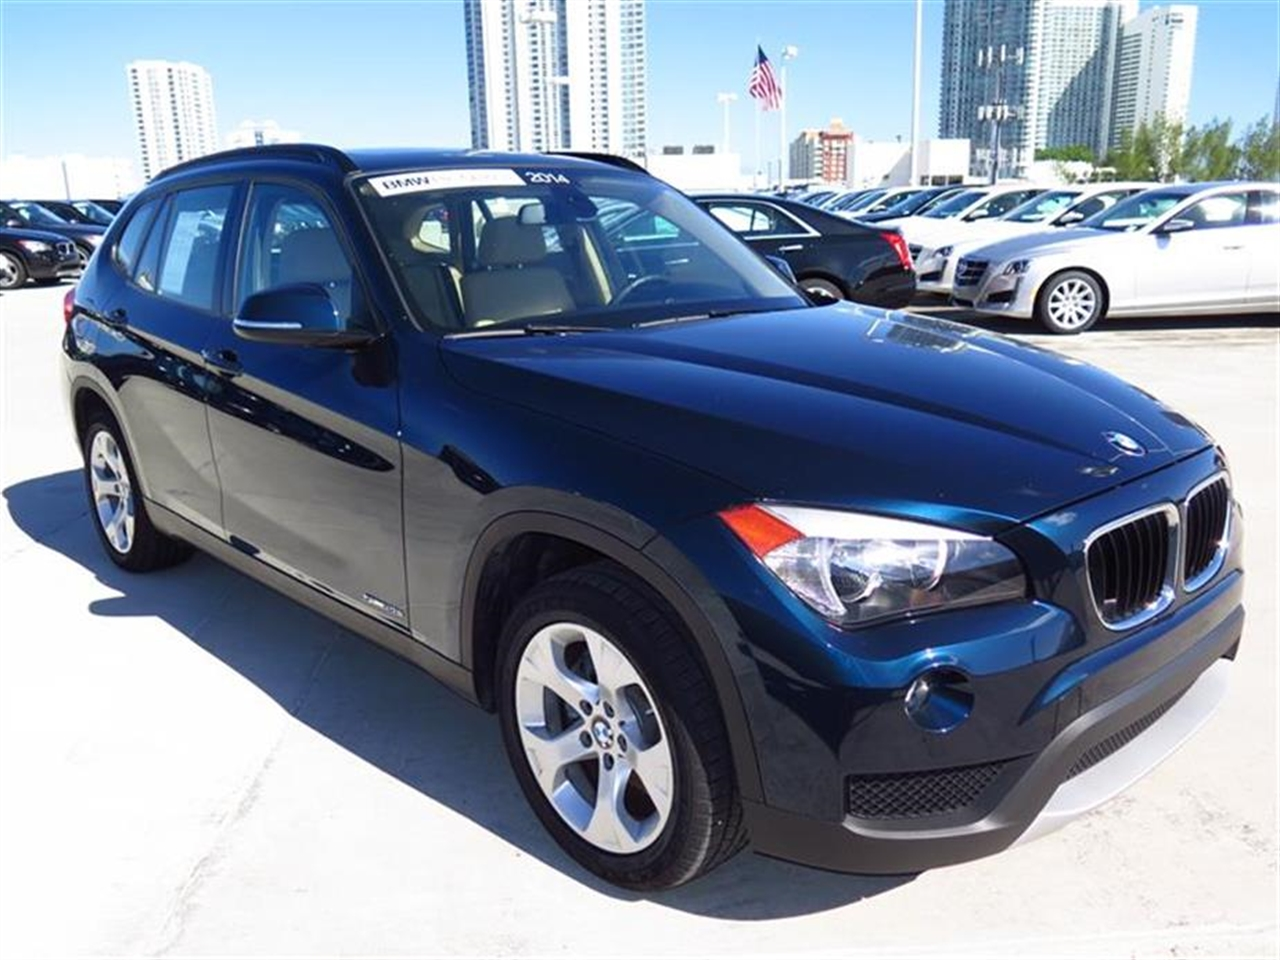 2014 BMW X1 RWD 4dr sDrive28i 9081 miles 2 Seatback Storage Pockets 3 12V DC Power Outlets LEATH